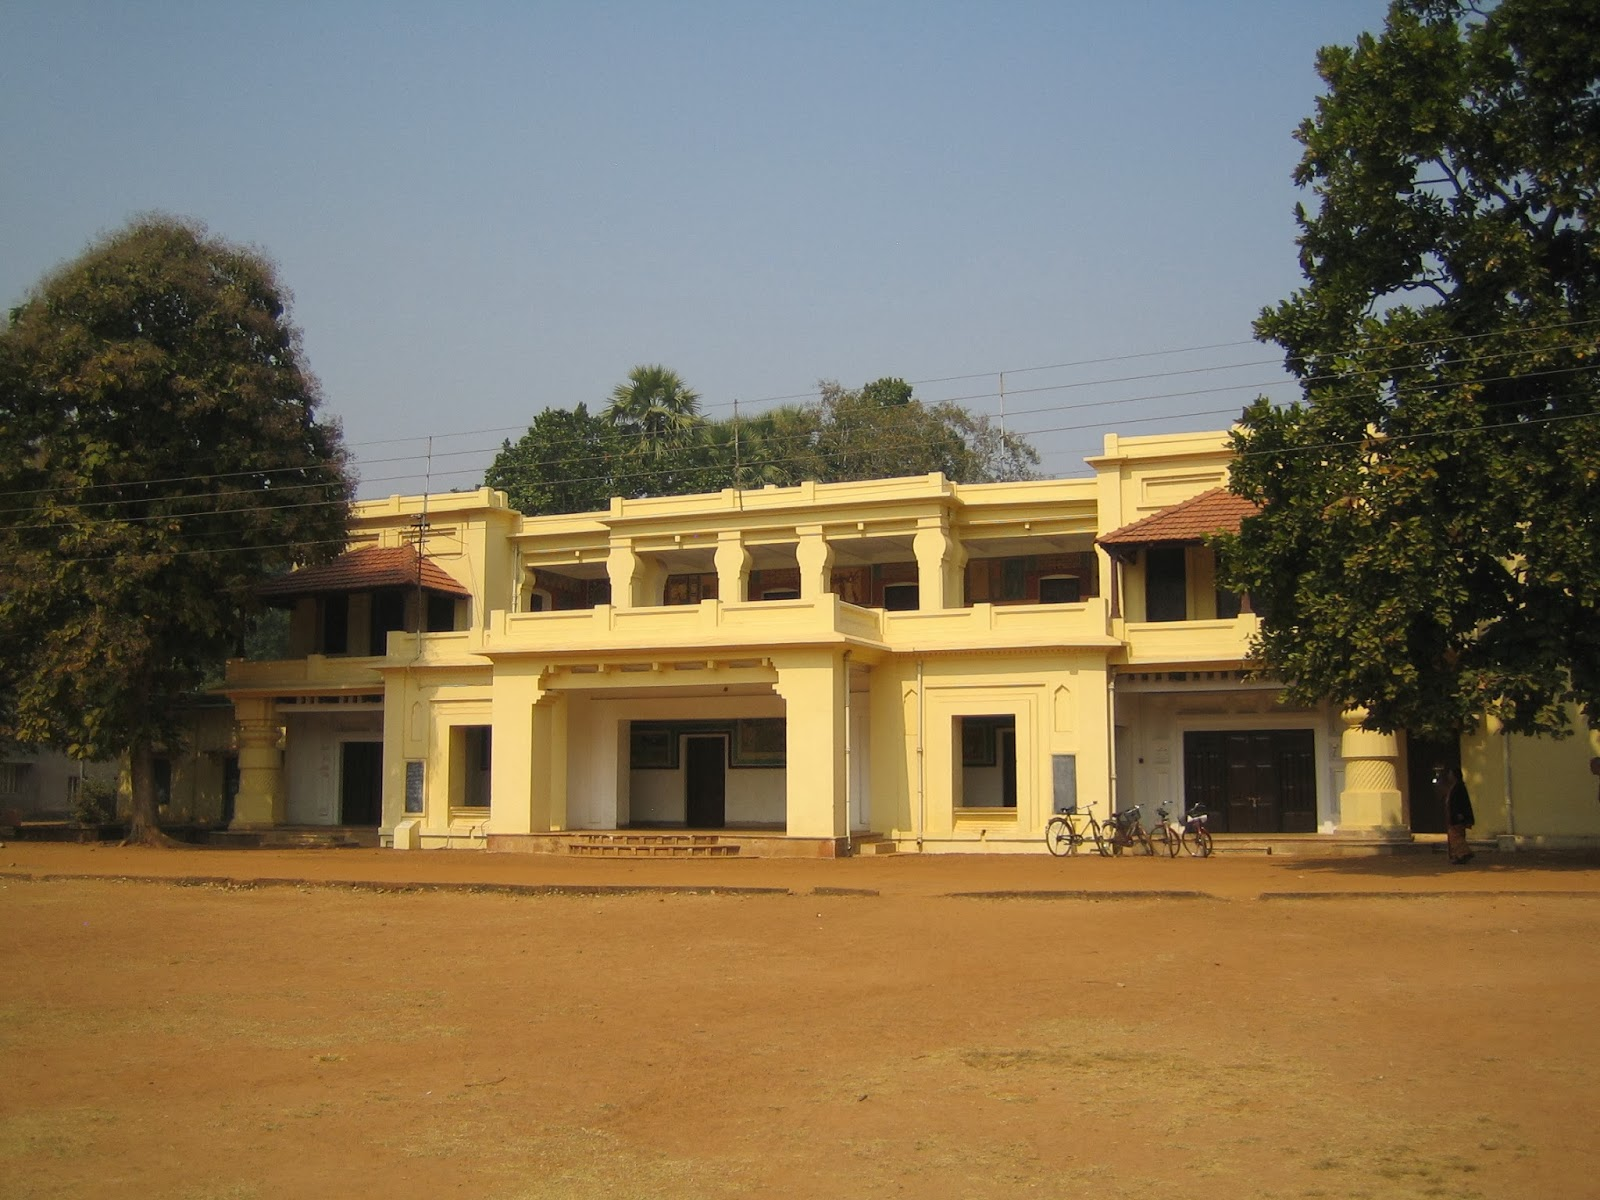 Durgapur India  city photos : SHANTINIKETAN ASHRAM DURGAPUR INDIA :